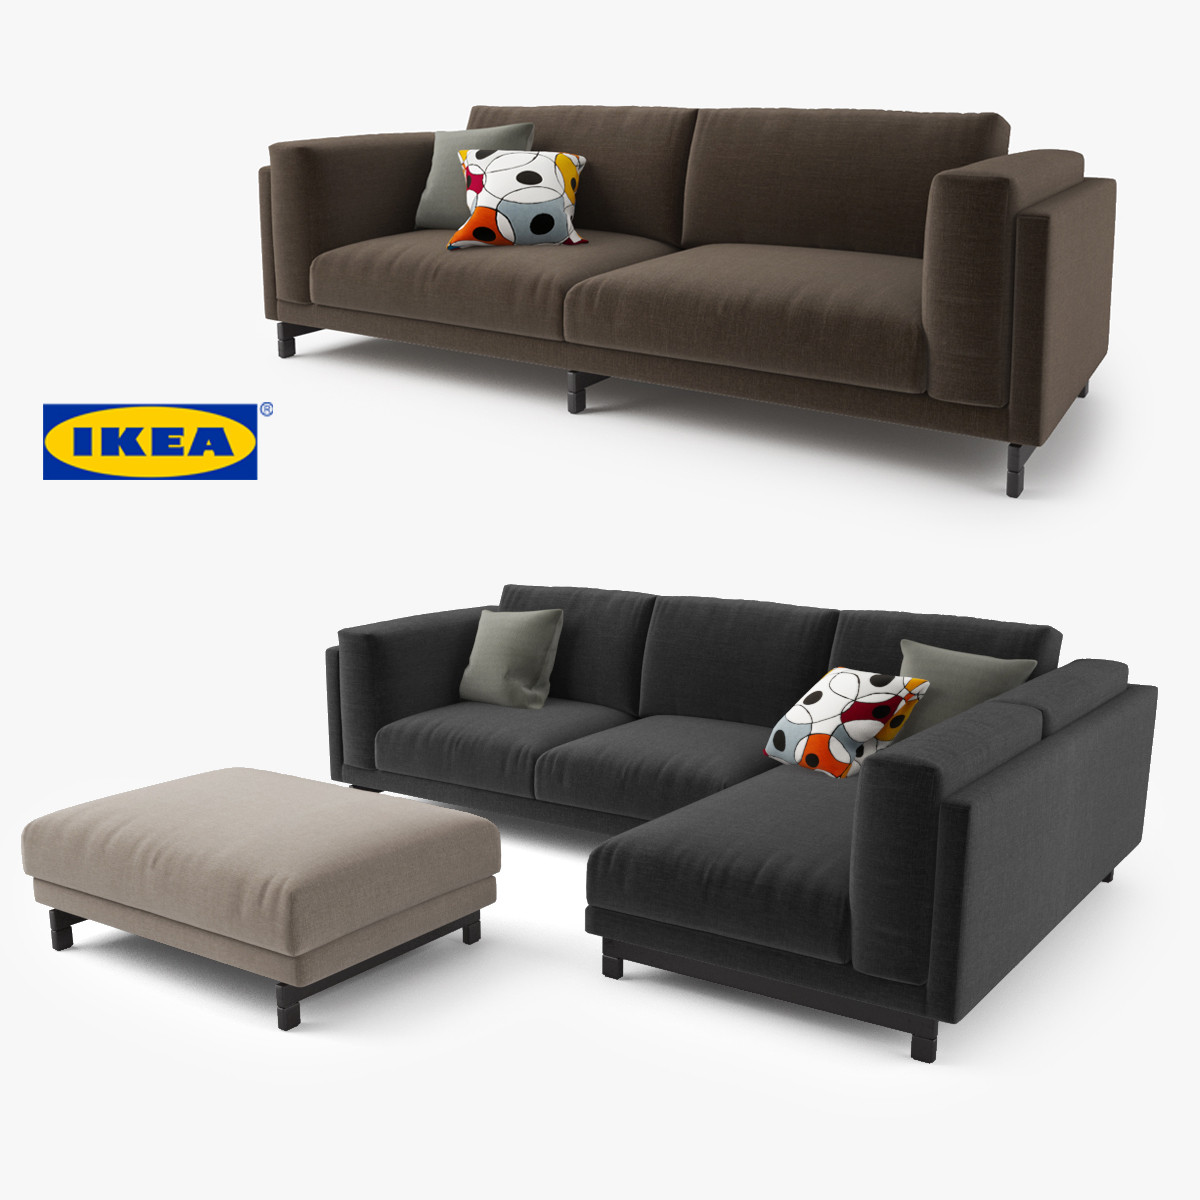 zweisitzer sofa ikea nockeby loveseat 28 images 3d model ikea nockeby series sofa 3d model. Black Bedroom Furniture Sets. Home Design Ideas